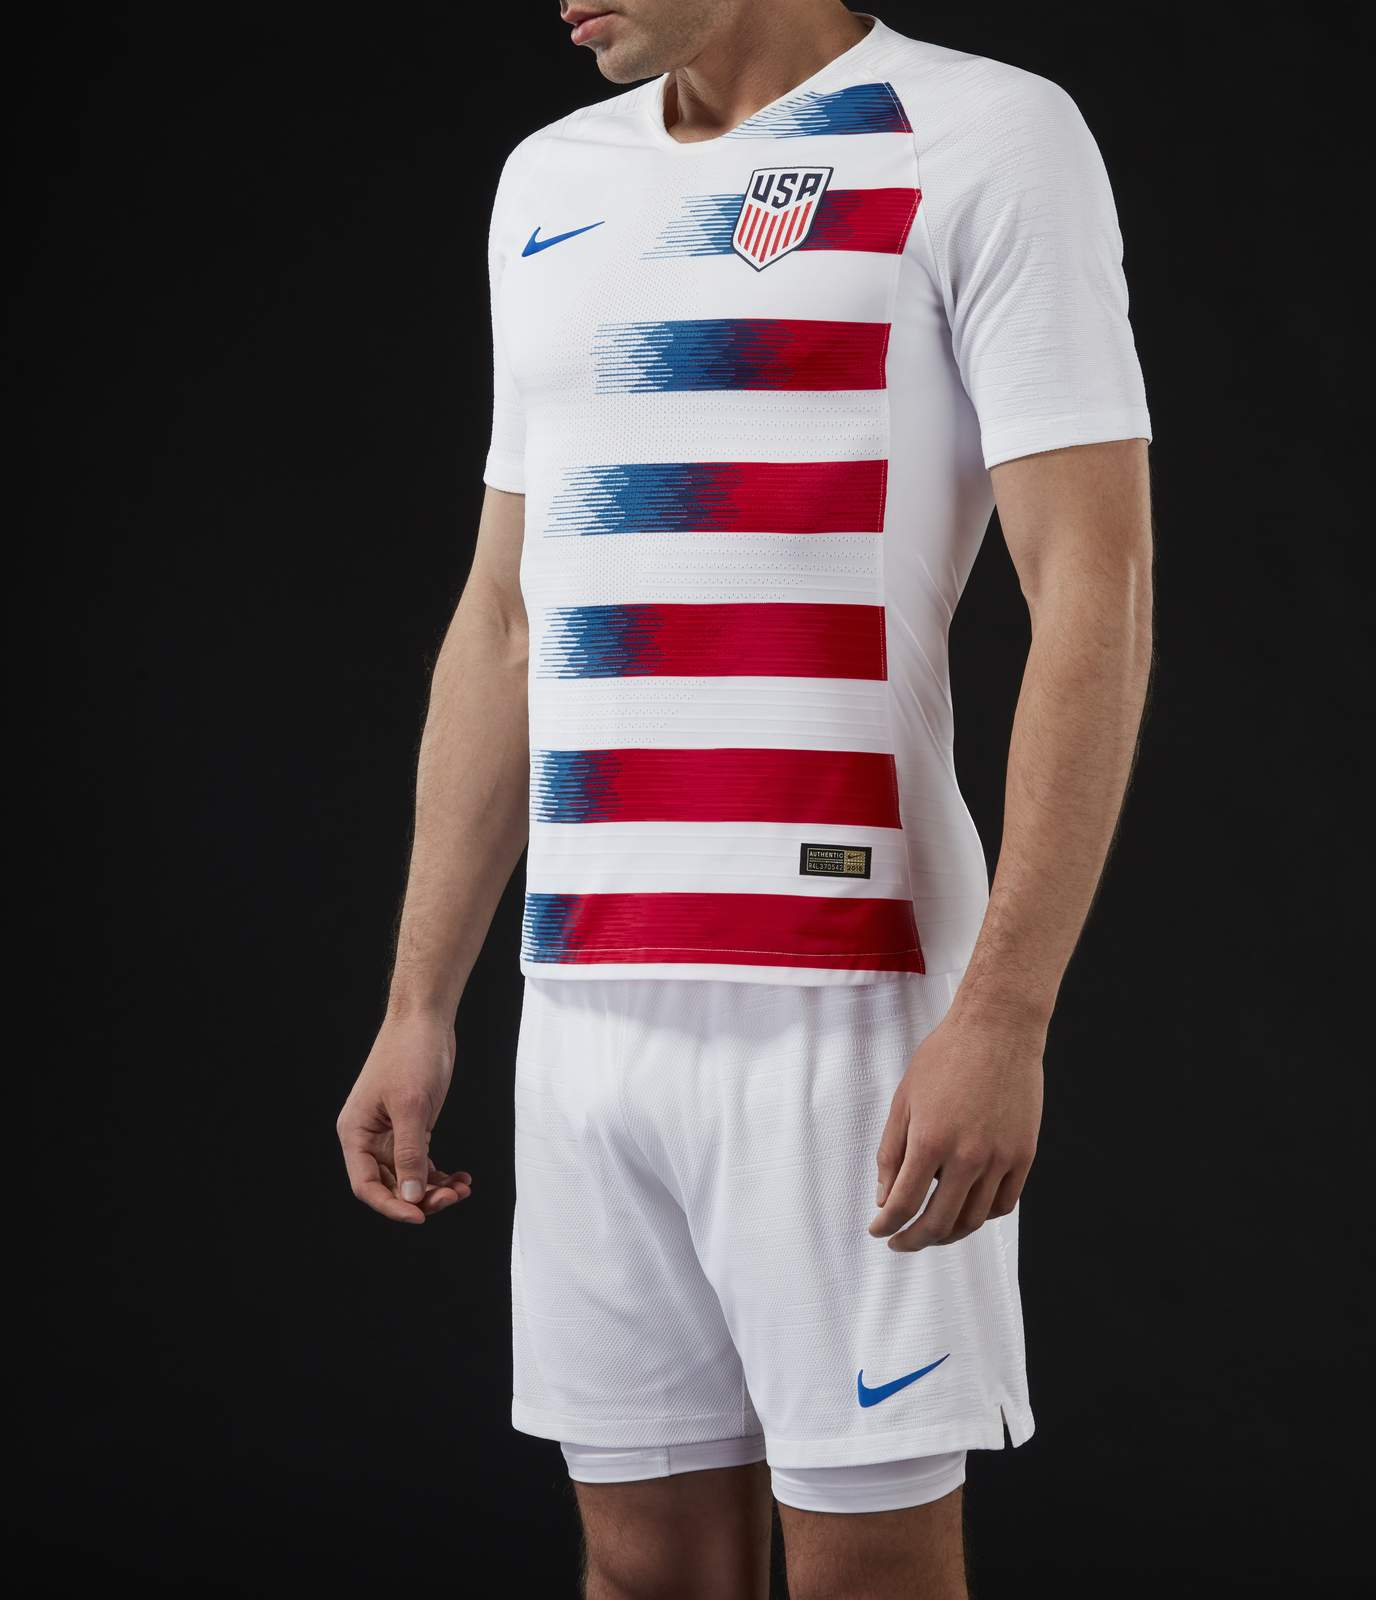 30cb166f2f3 The USA 2018 home kit leaves behind the rather uninspired 2016 and 2017  designs for a much more unique and personal look. The base color of the USA  2018 ...